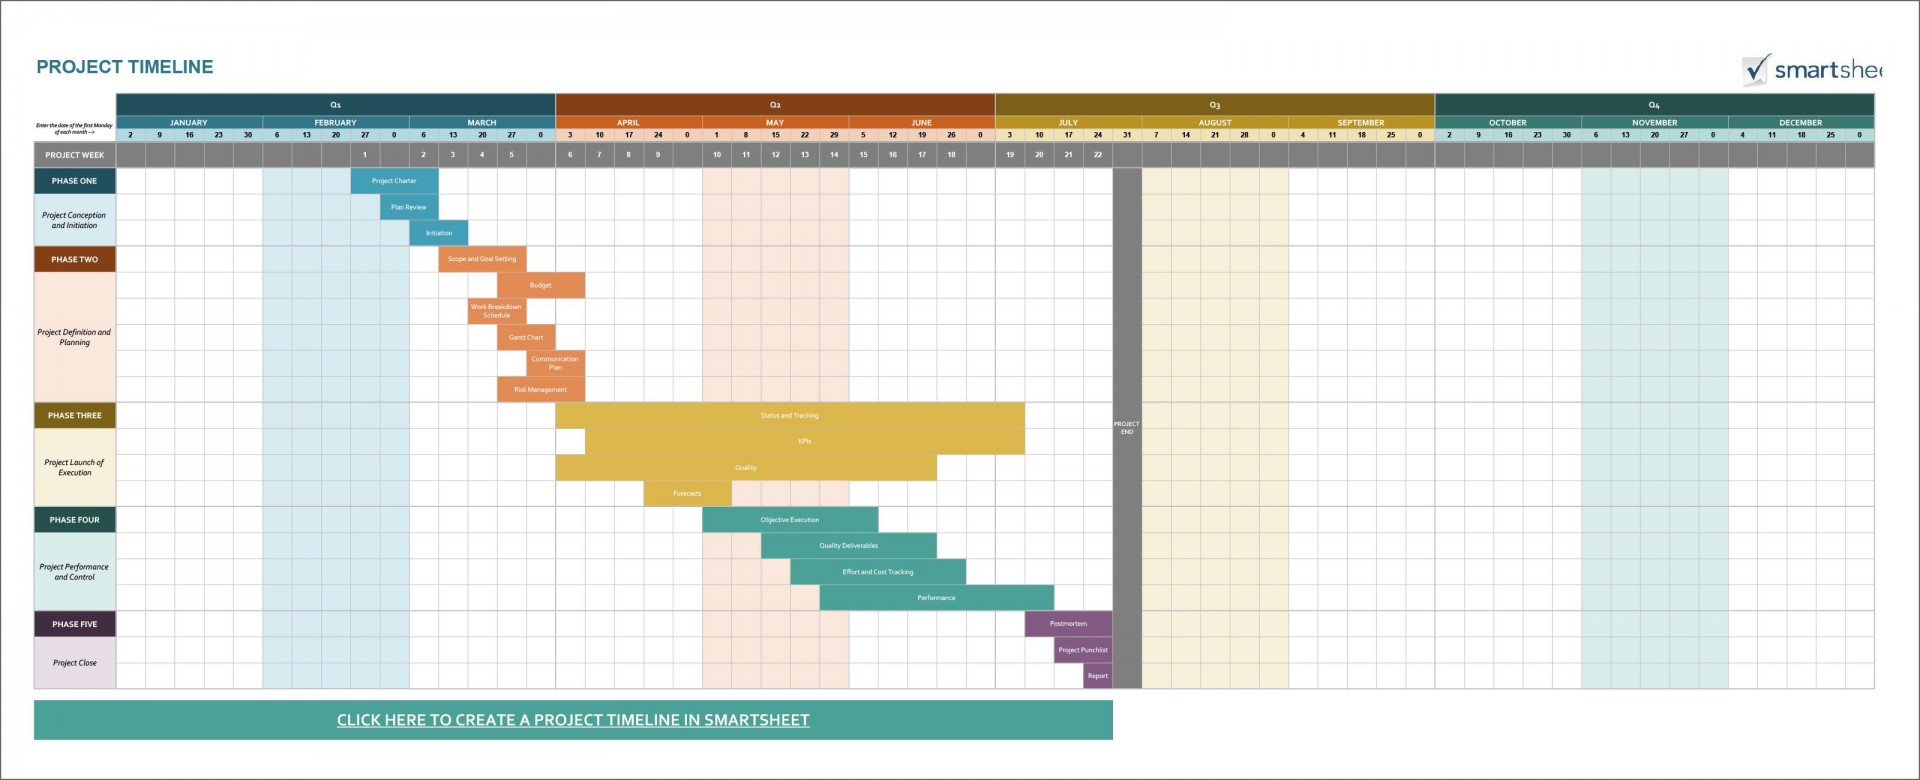 002 Breathtaking Excel Project Timeline Template High Def  2020 Xl Tutorial1920